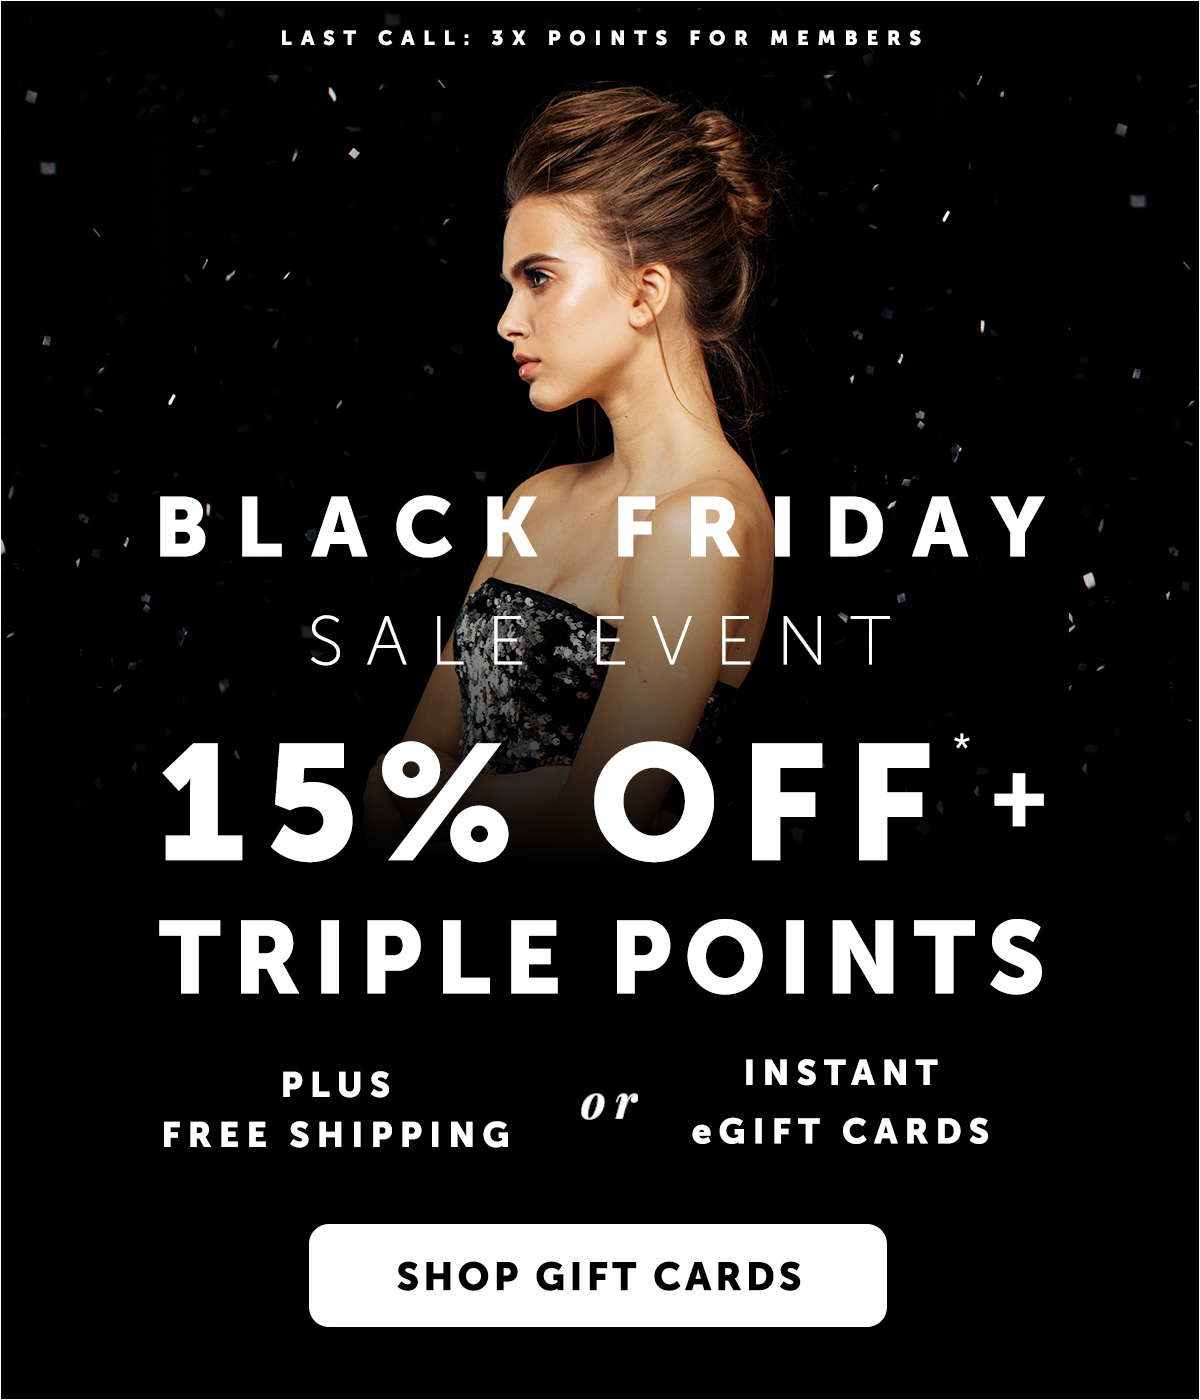 Take 15% OFF Your Entire Order + TRIPLE Points + FREE Shipping